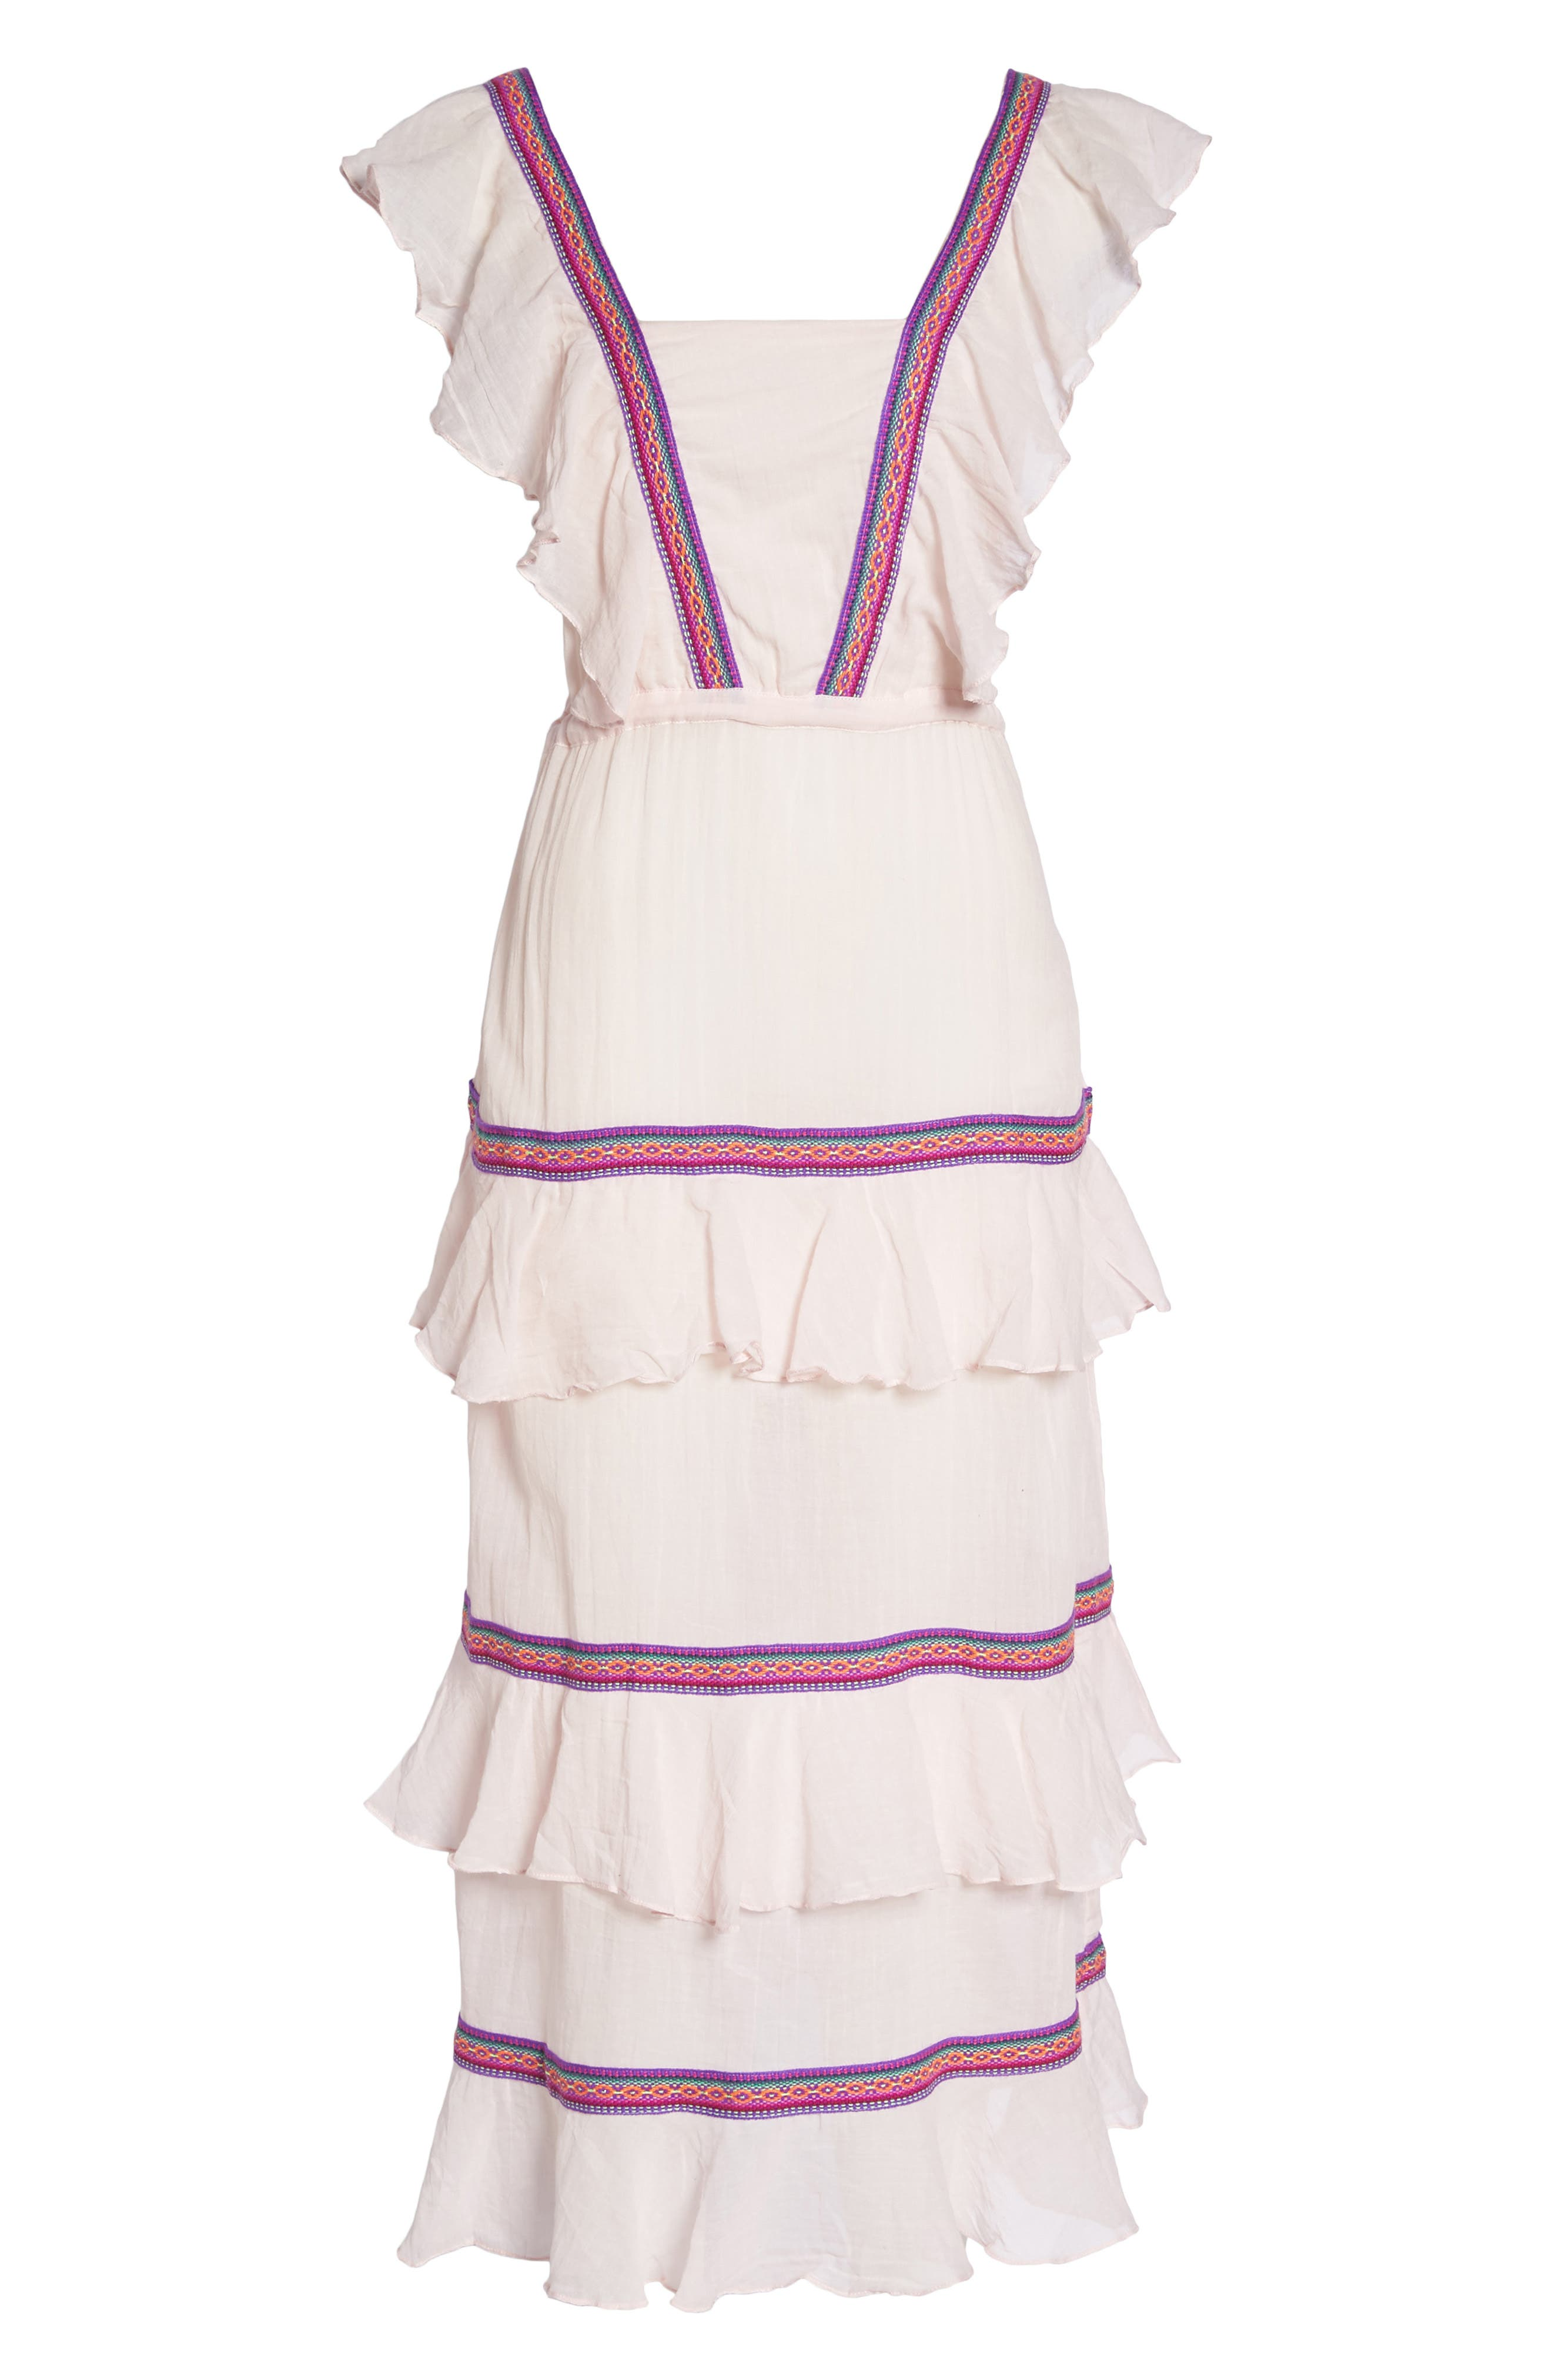 Eve Cover-Up Dress,                             Alternate thumbnail 6, color,                             Pale Pink